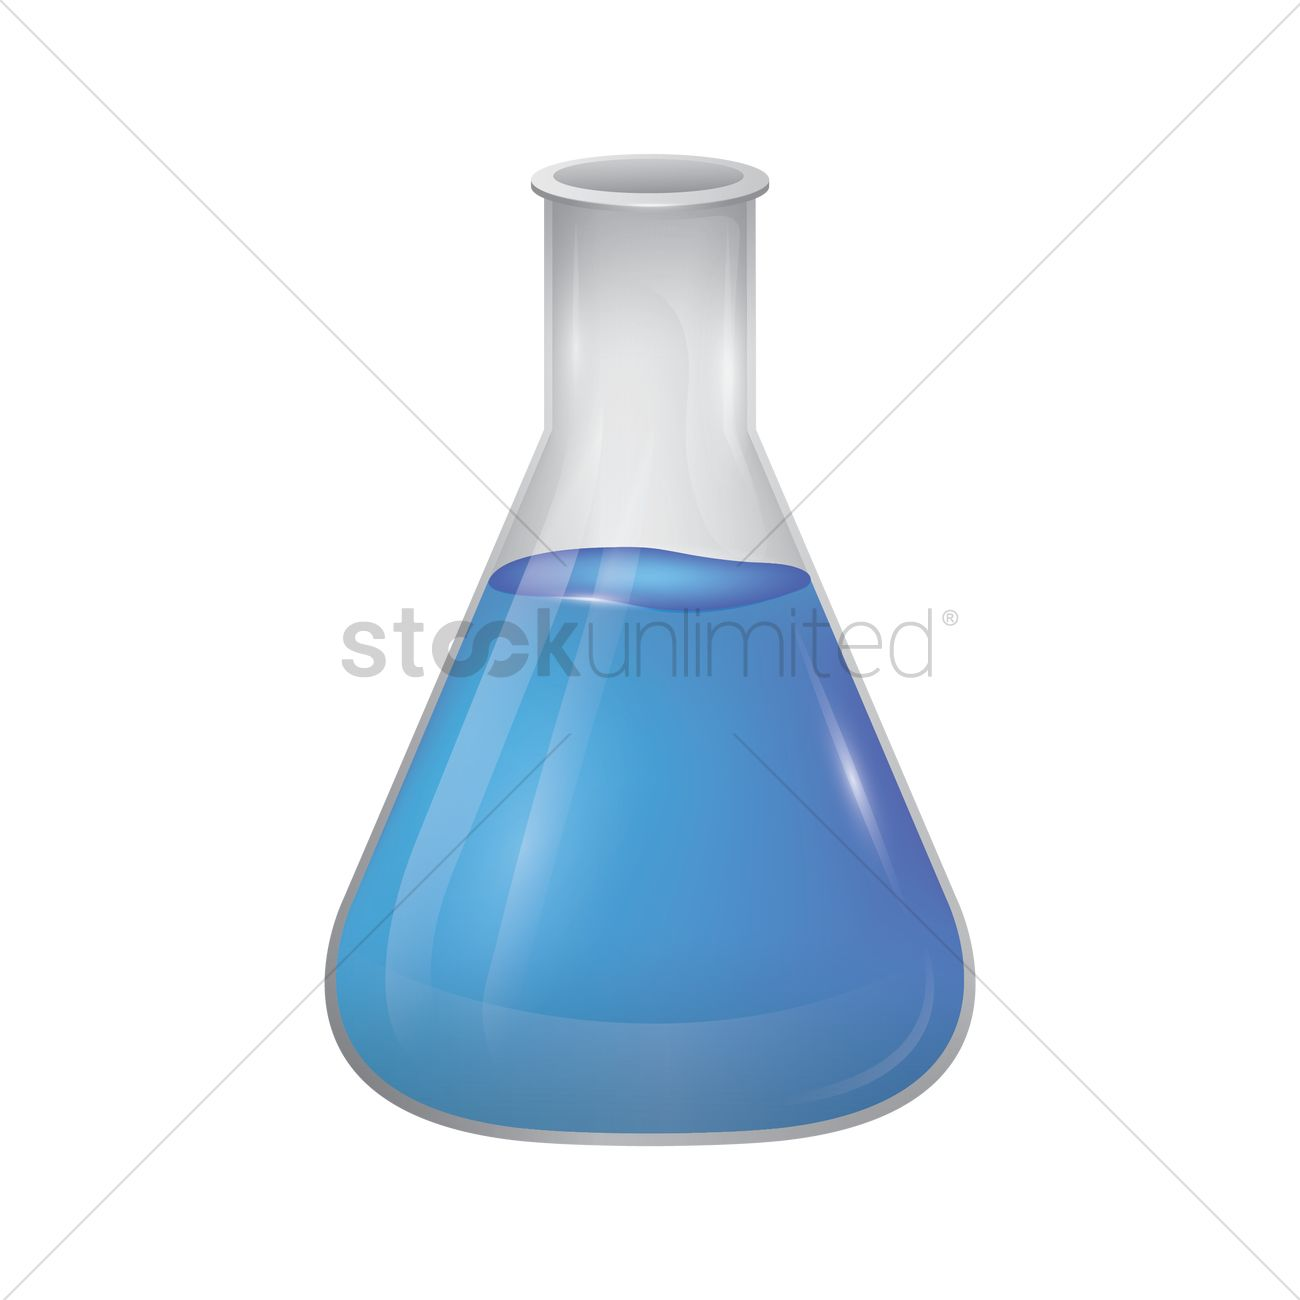 1300x1300 Conical Flask Vector Image